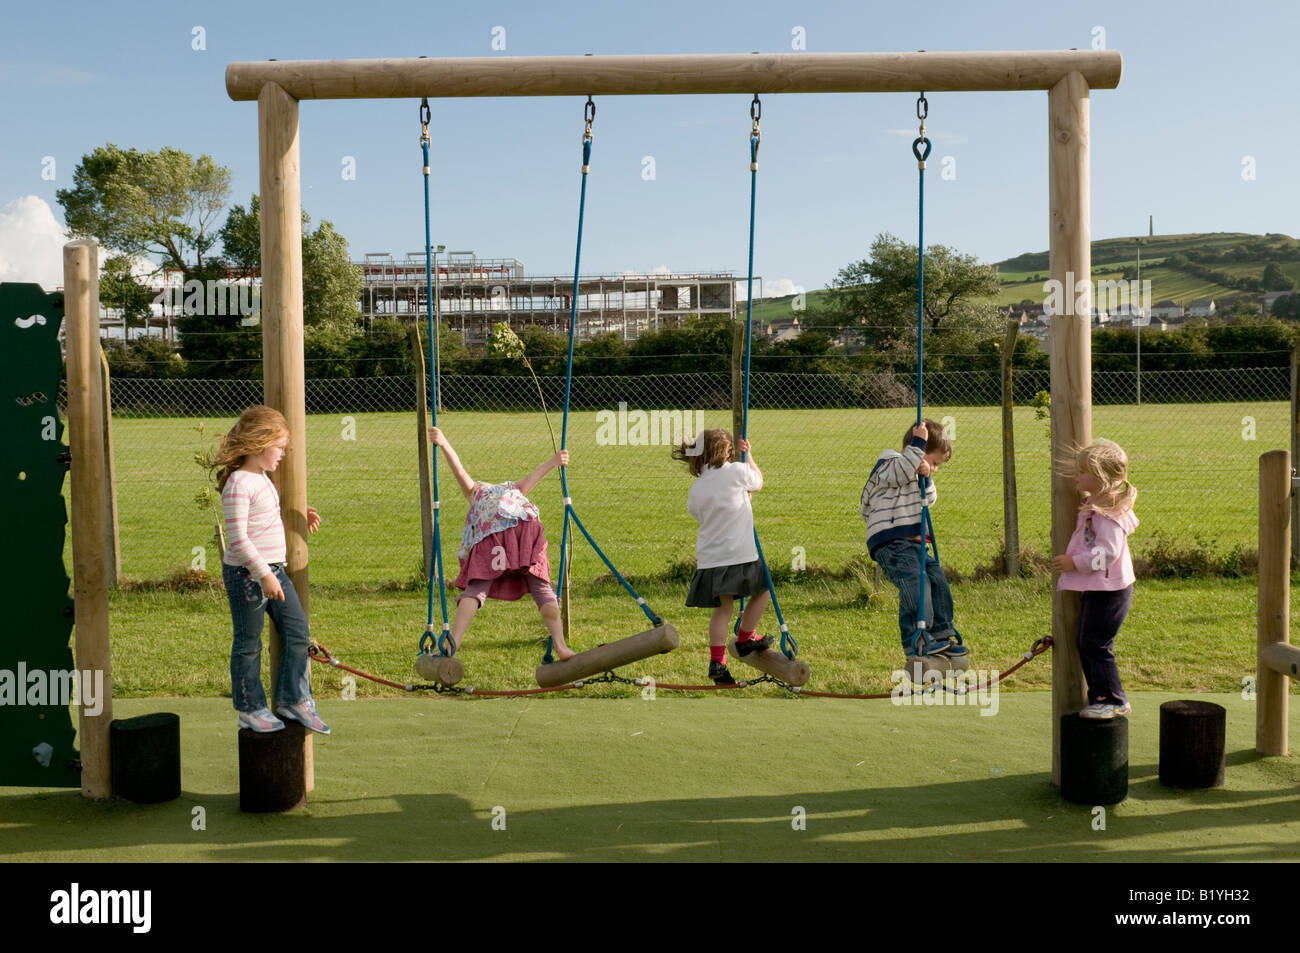 five 5 primary school children outdoors in playground playing on rope climbing exercise  frame, Aberystwyth Wales - Stock Image